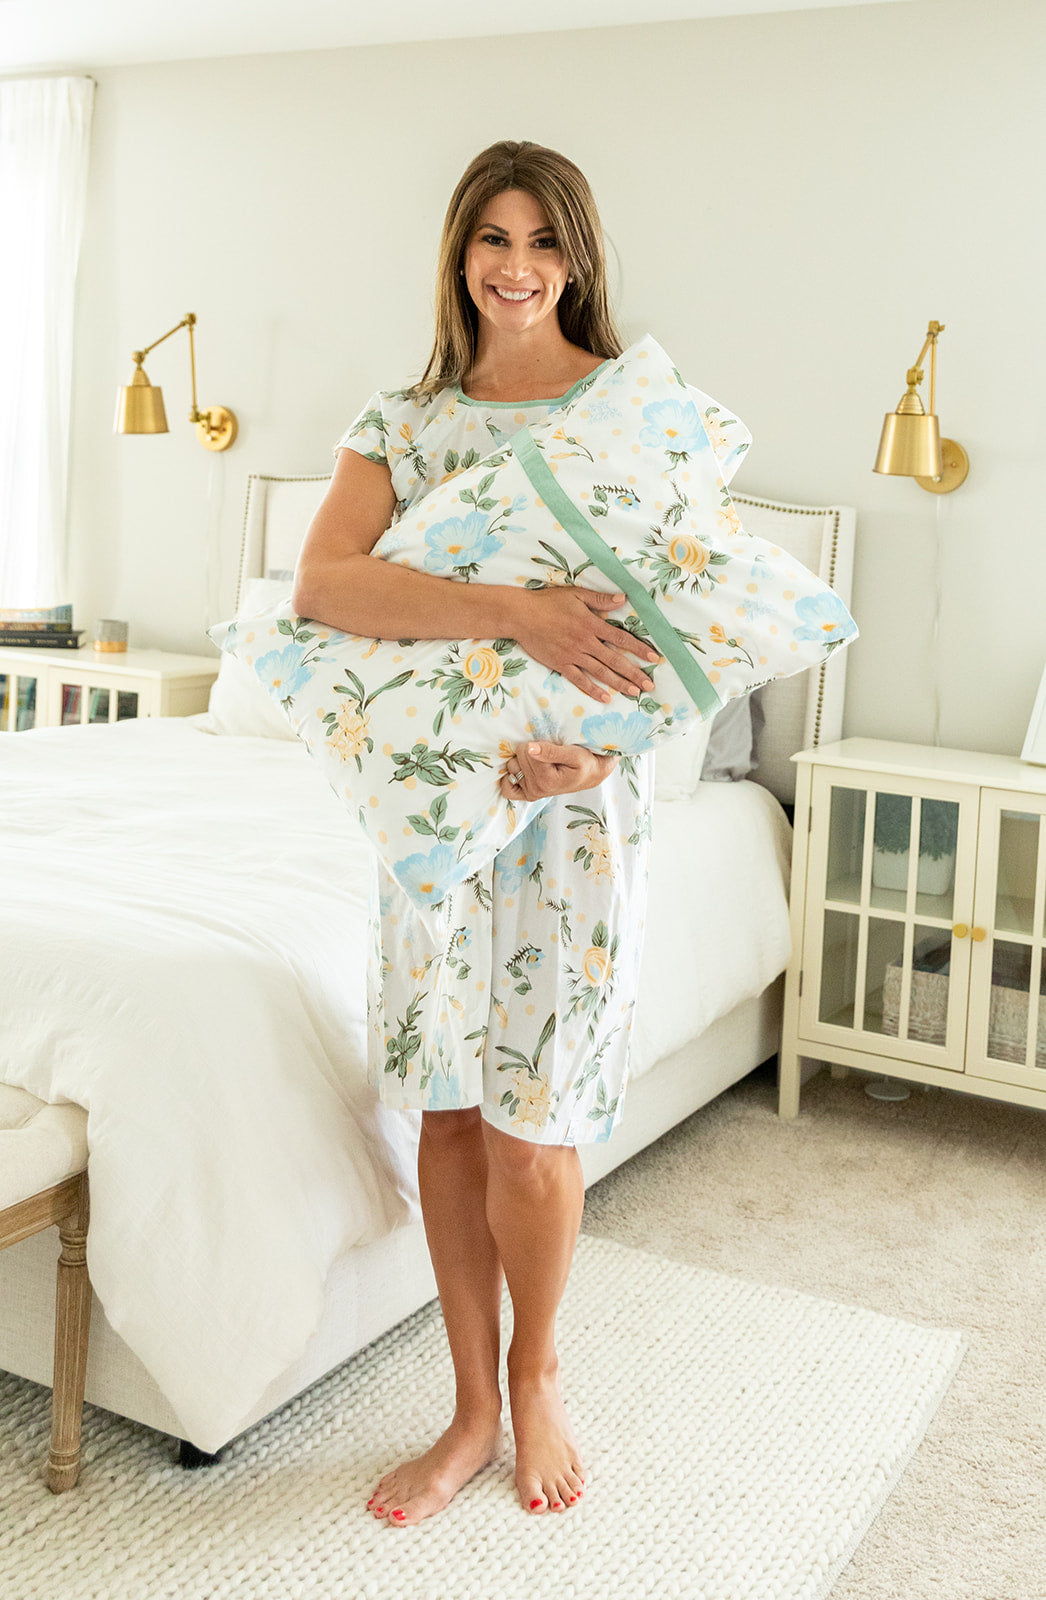 Hadley Gownie & Pillowcase Set